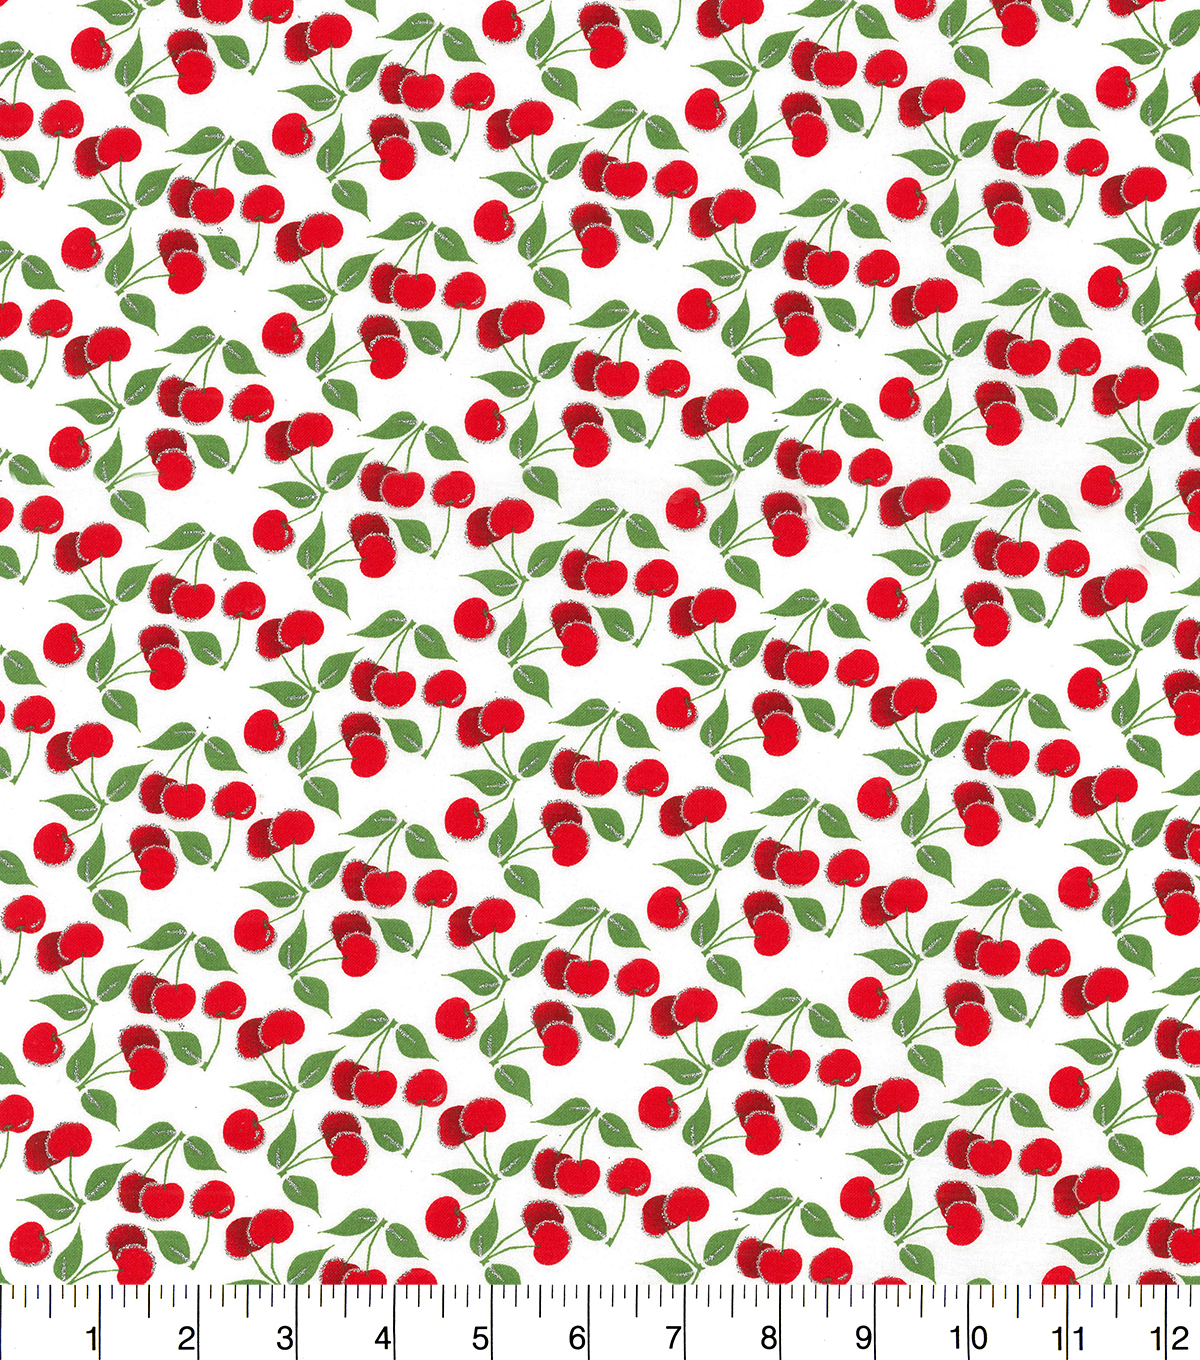 Novelty Cotton Fabric-Cherries With Glitter On White